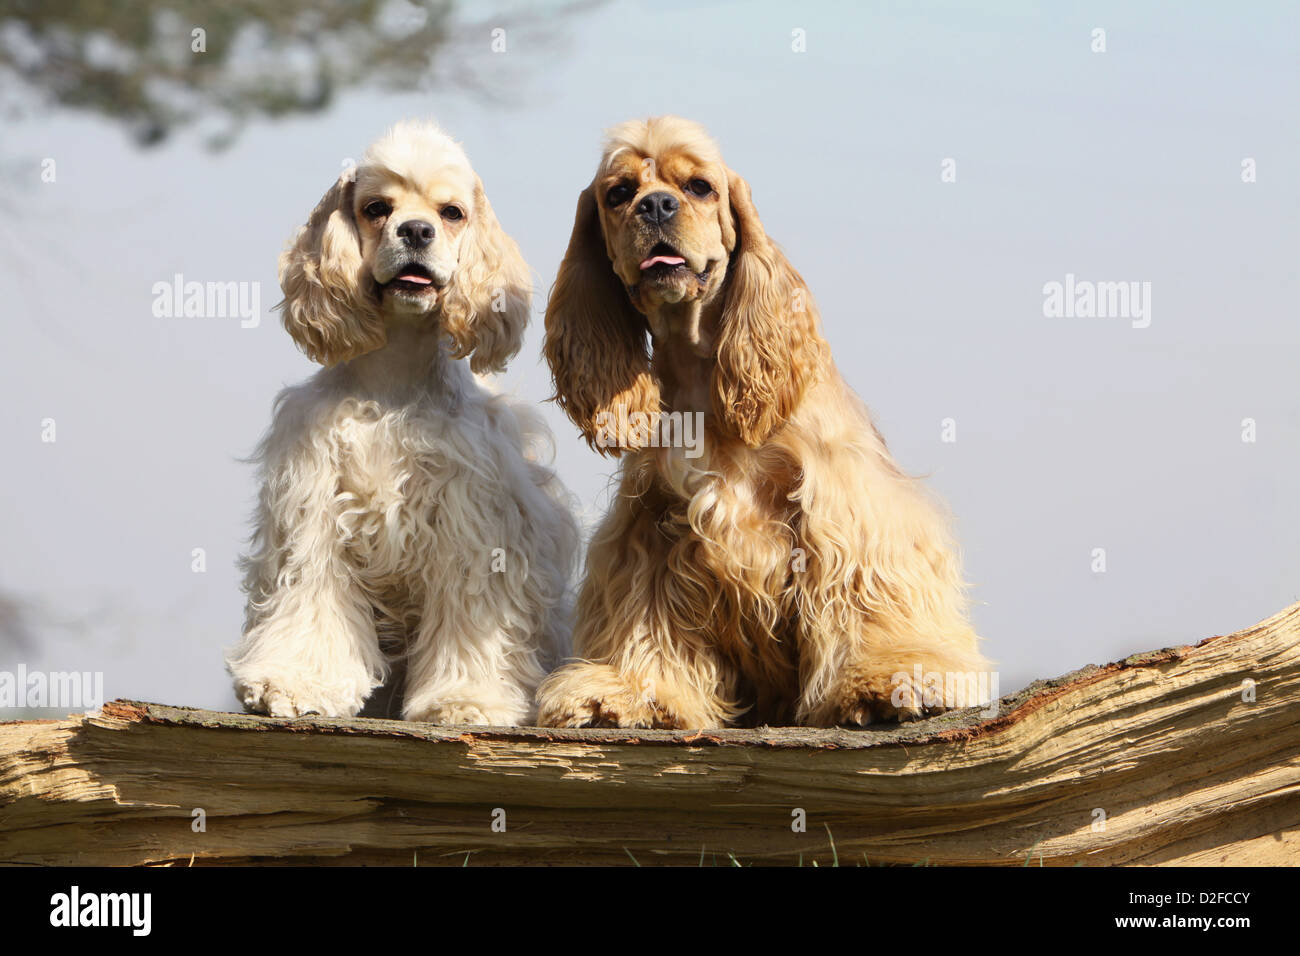 Dog American Cocker Spaniel Adults Different Colors Cream